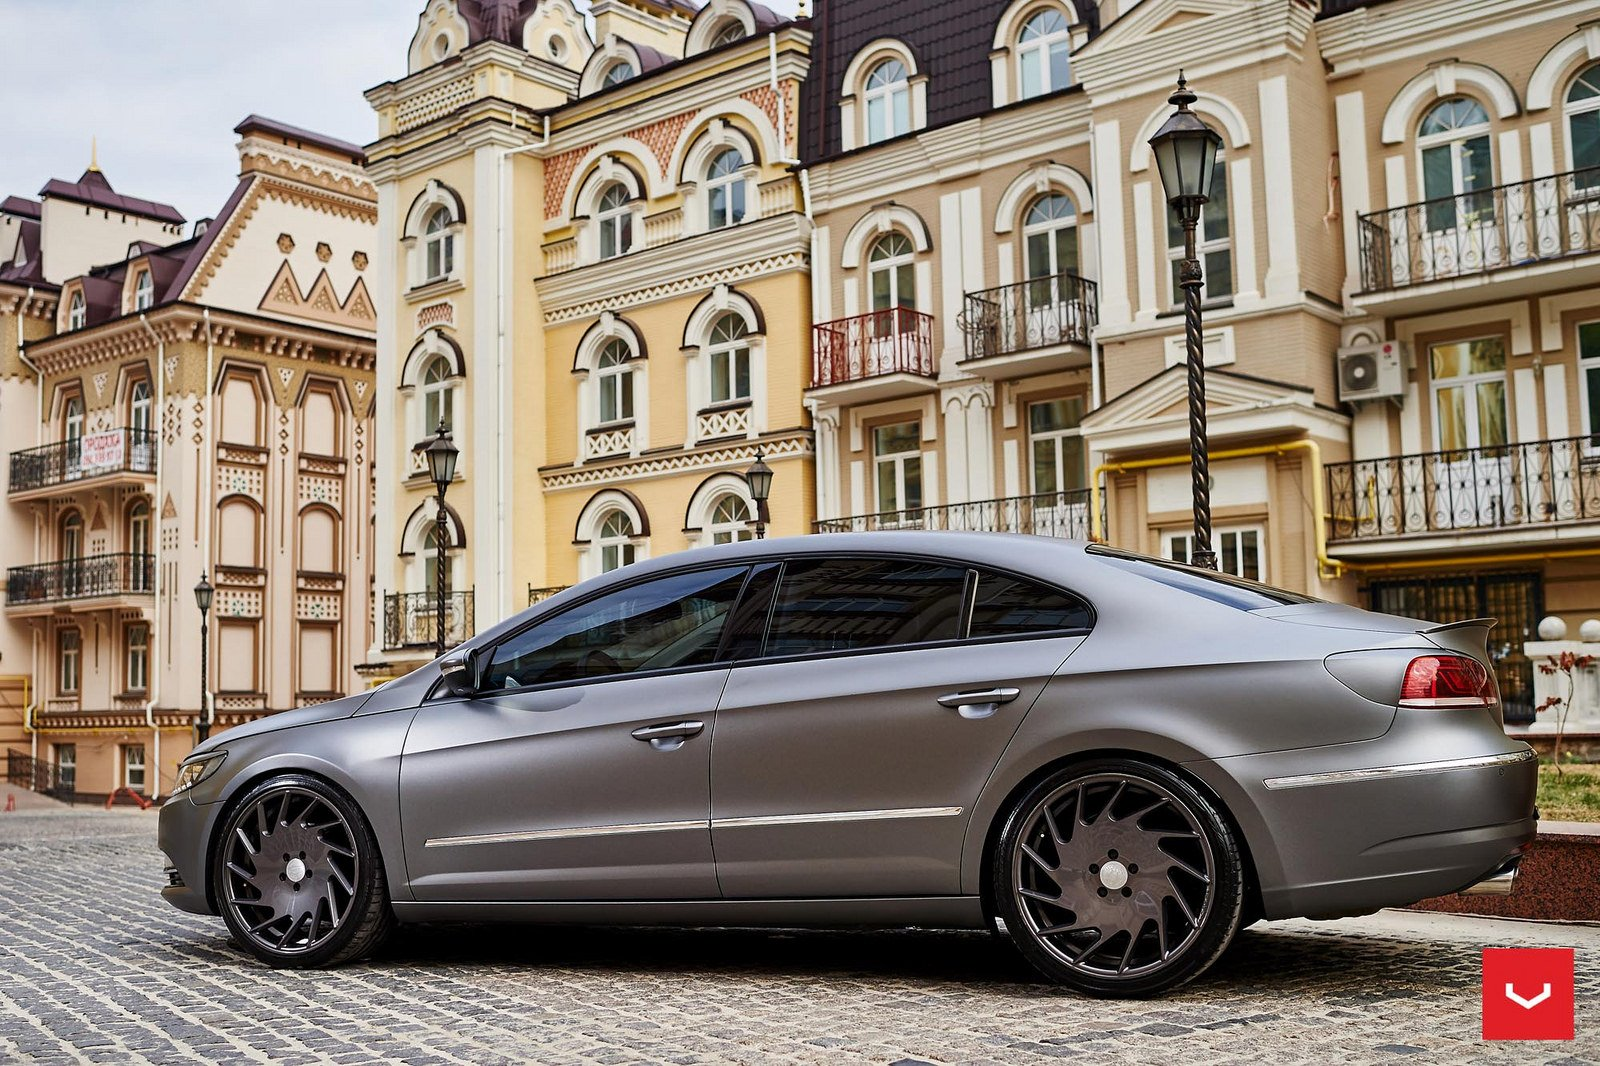 vossen wheels volkswagen cc cars sedan modified wallpaper. Black Bedroom Furniture Sets. Home Design Ideas